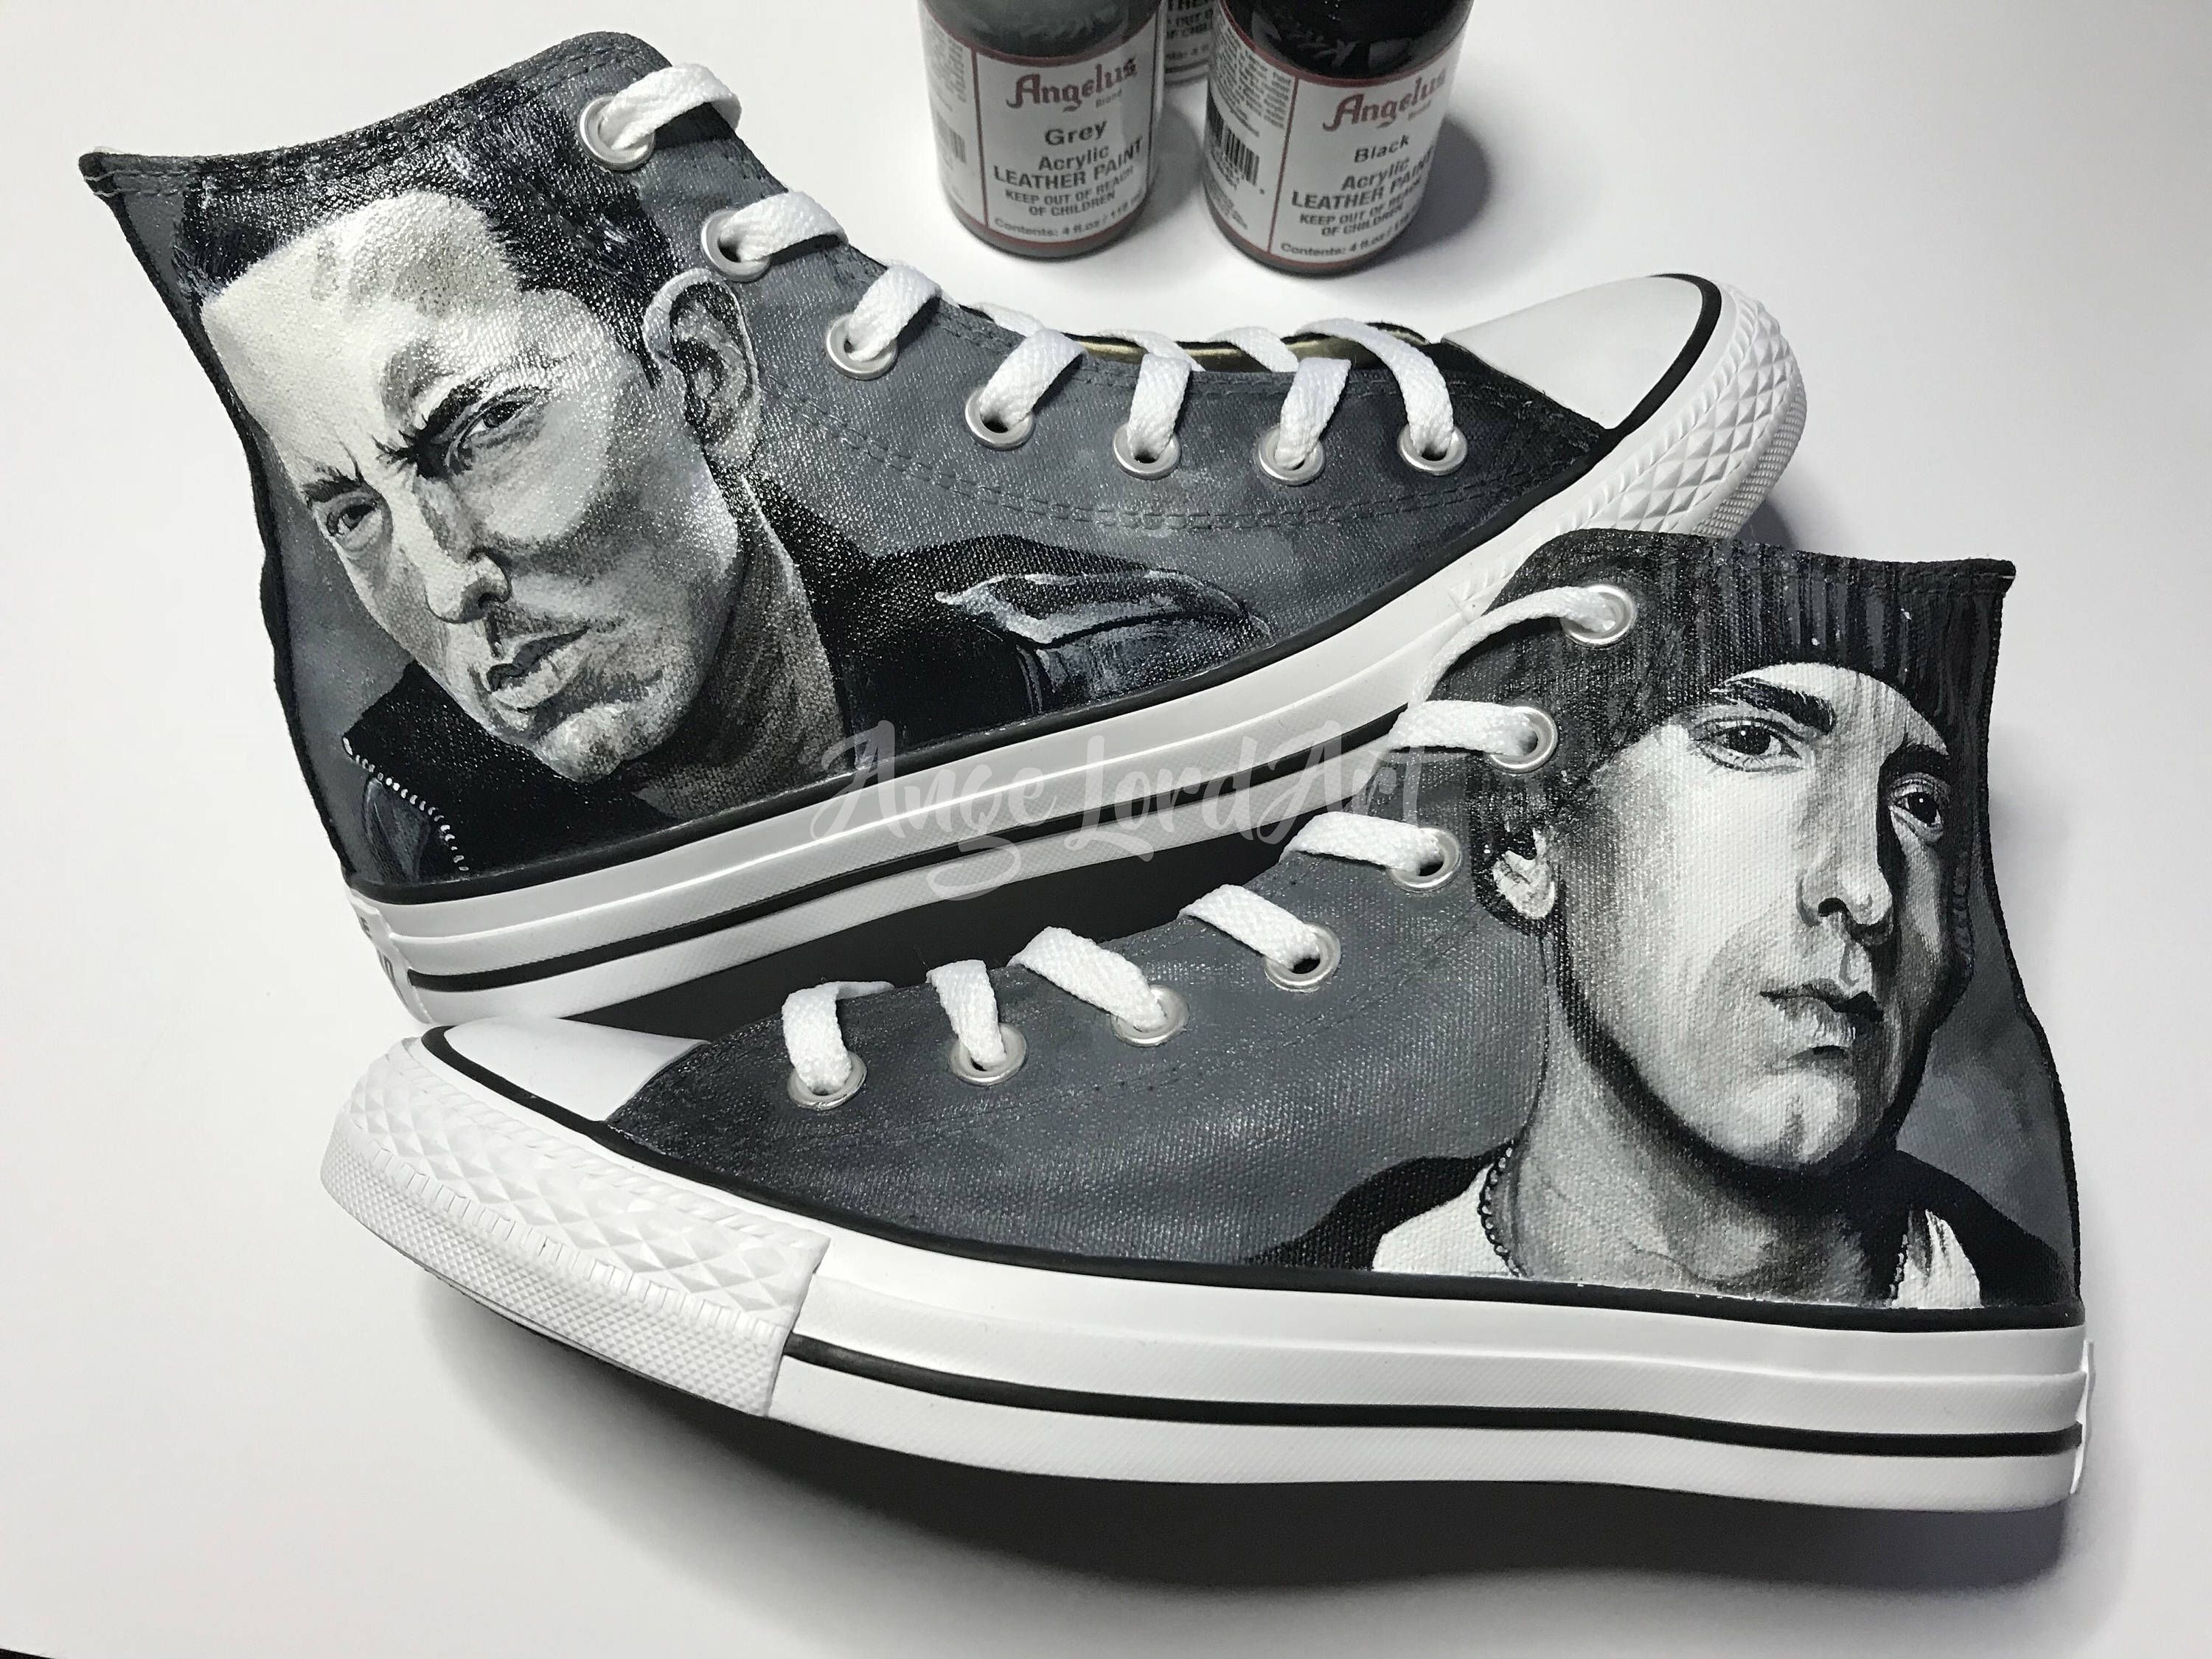 224f8a85a3ca Excited to share this item from my  etsy shop  Custom Painted Eminem inspired  Converse Hi Tops   Vans shoes sneakers.